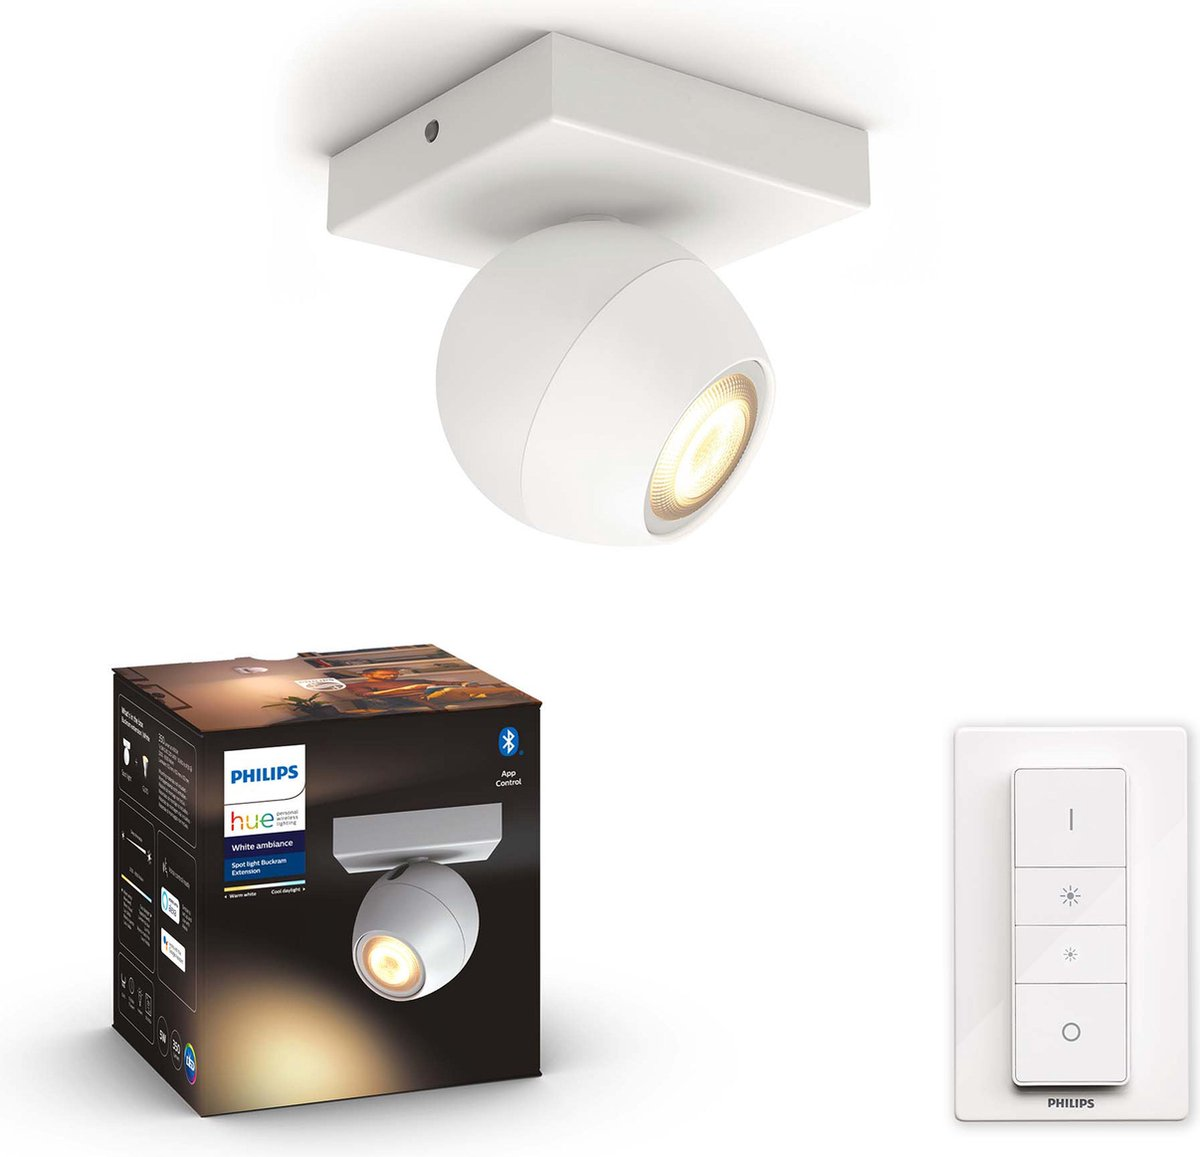 Philips Hue - BUCKRAM single spot white 1x5.5W 230V - White Ambiance - Bluetooth Dimmer Included